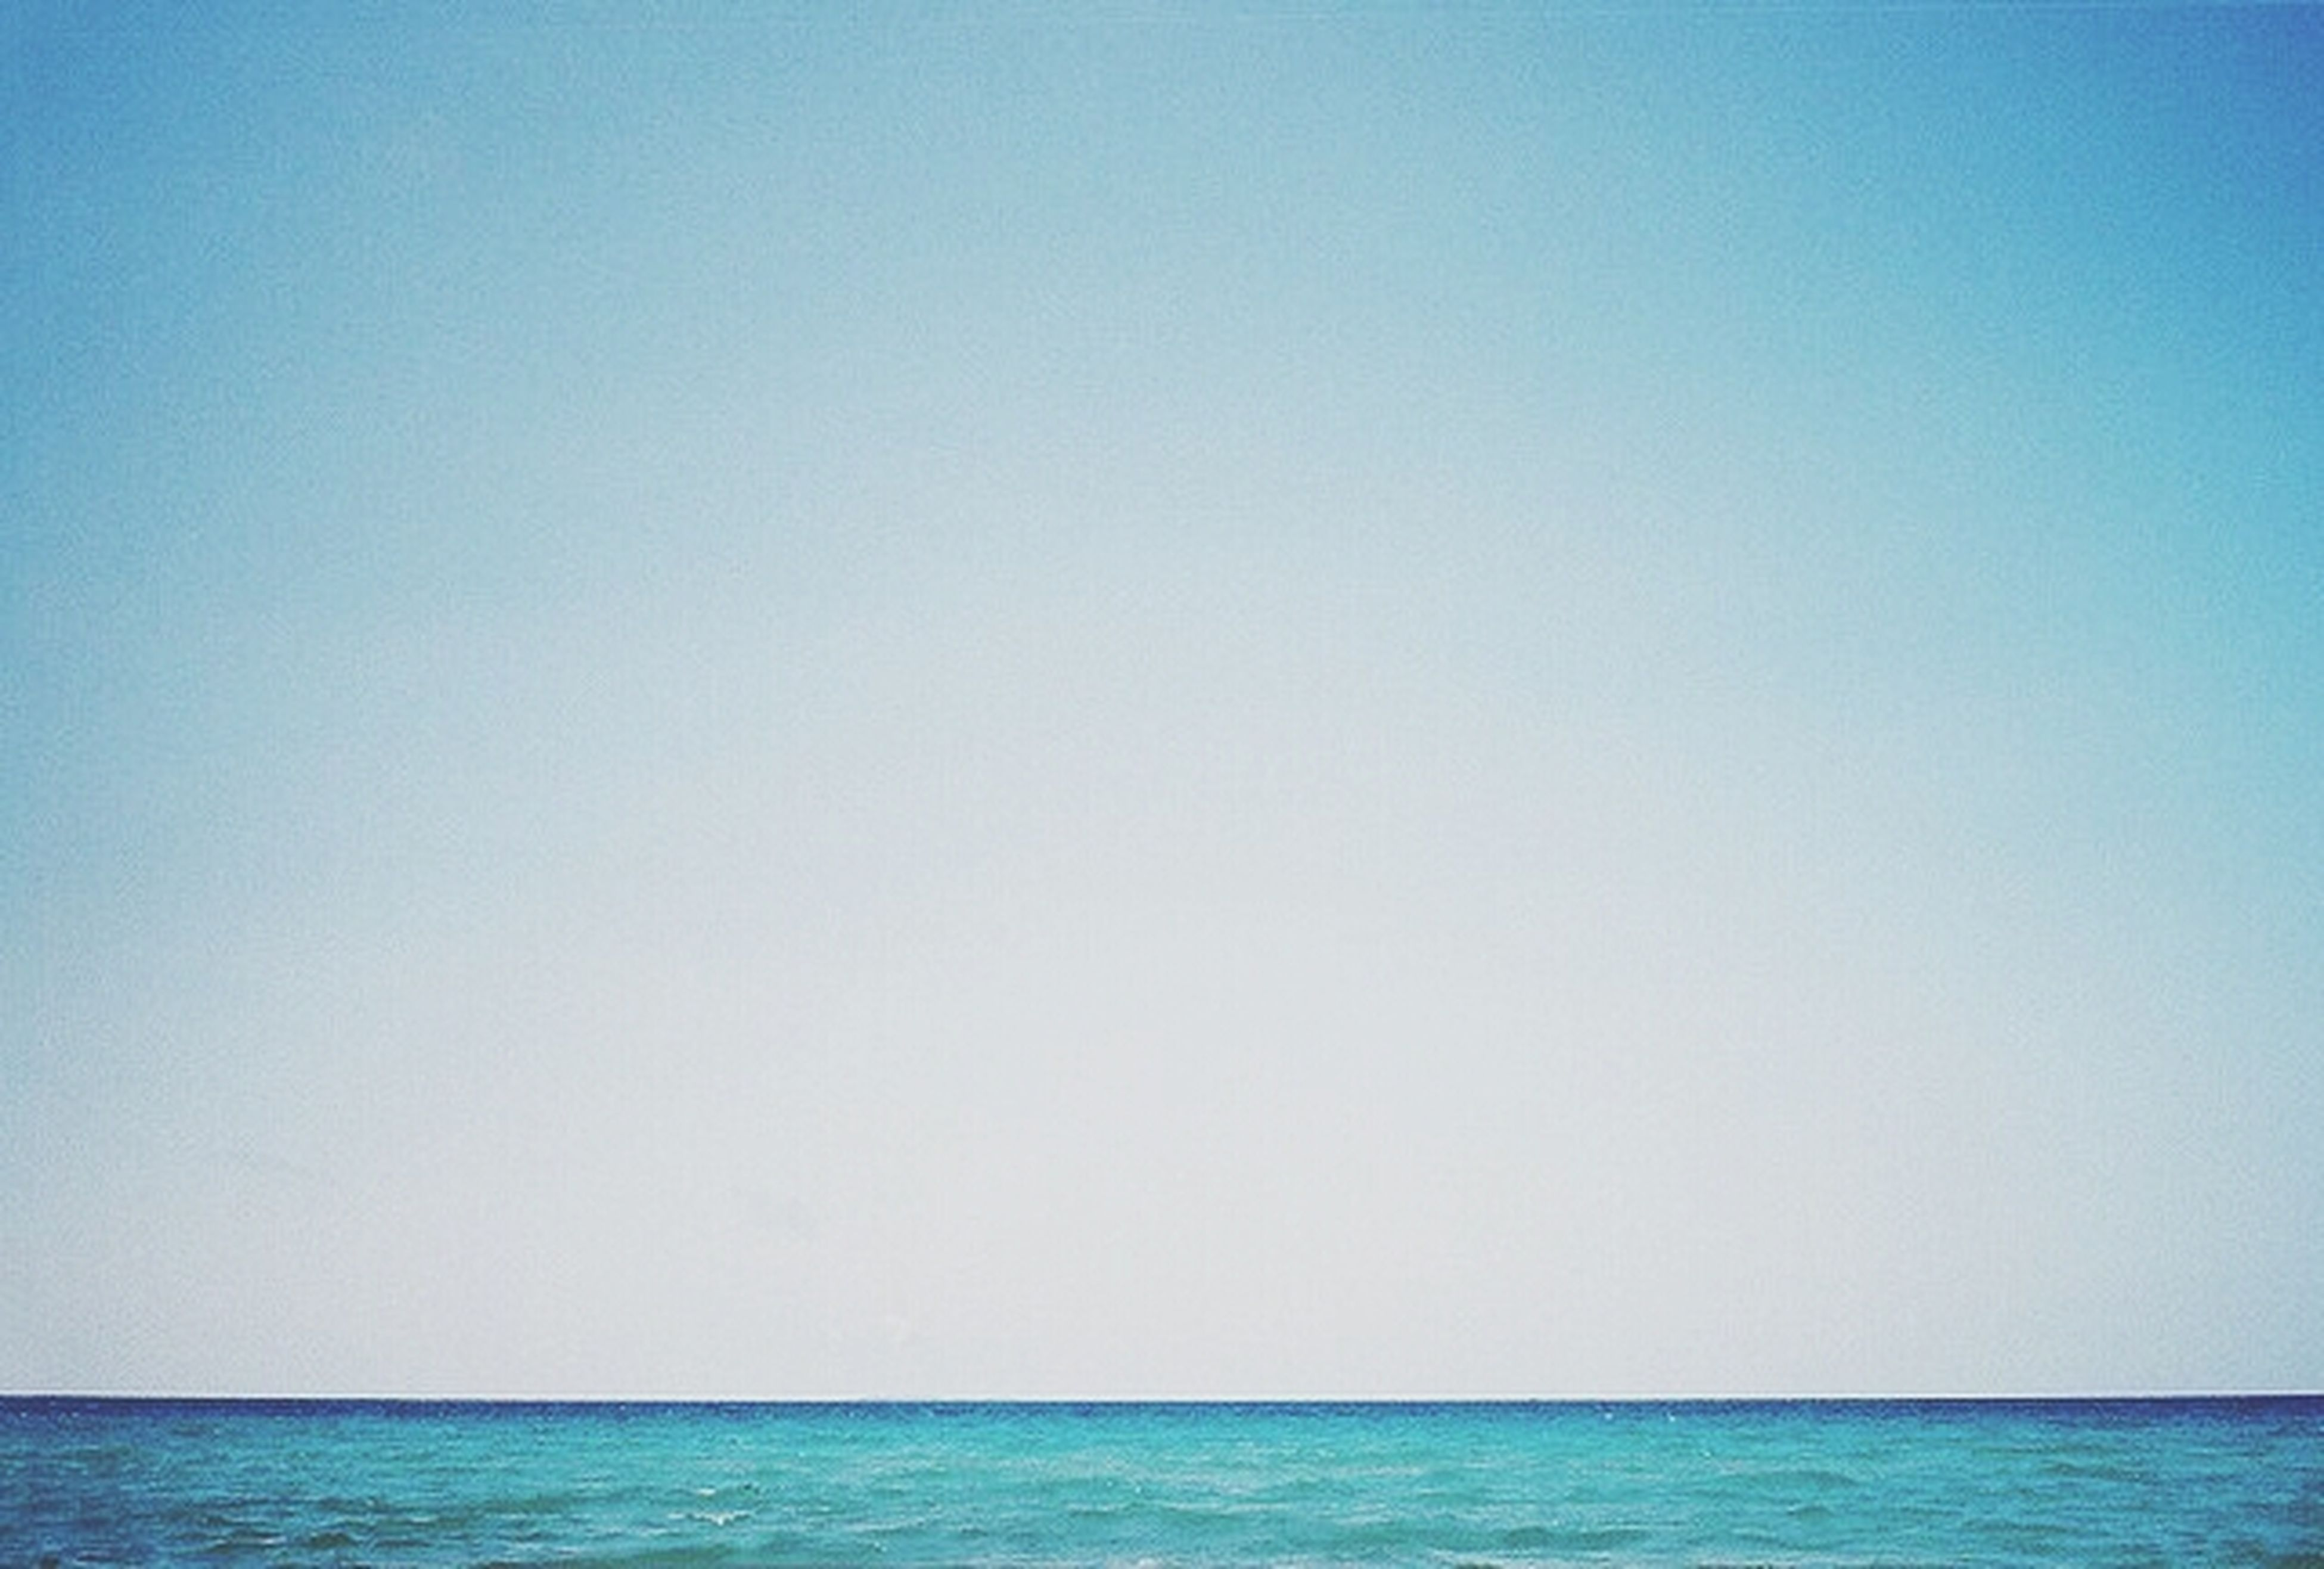 sea, copy space, horizon over water, clear sky, water, blue, tranquil scene, tranquility, scenics, waterfront, beauty in nature, nature, idyllic, seascape, day, remote, outdoors, no people, rippled, calm